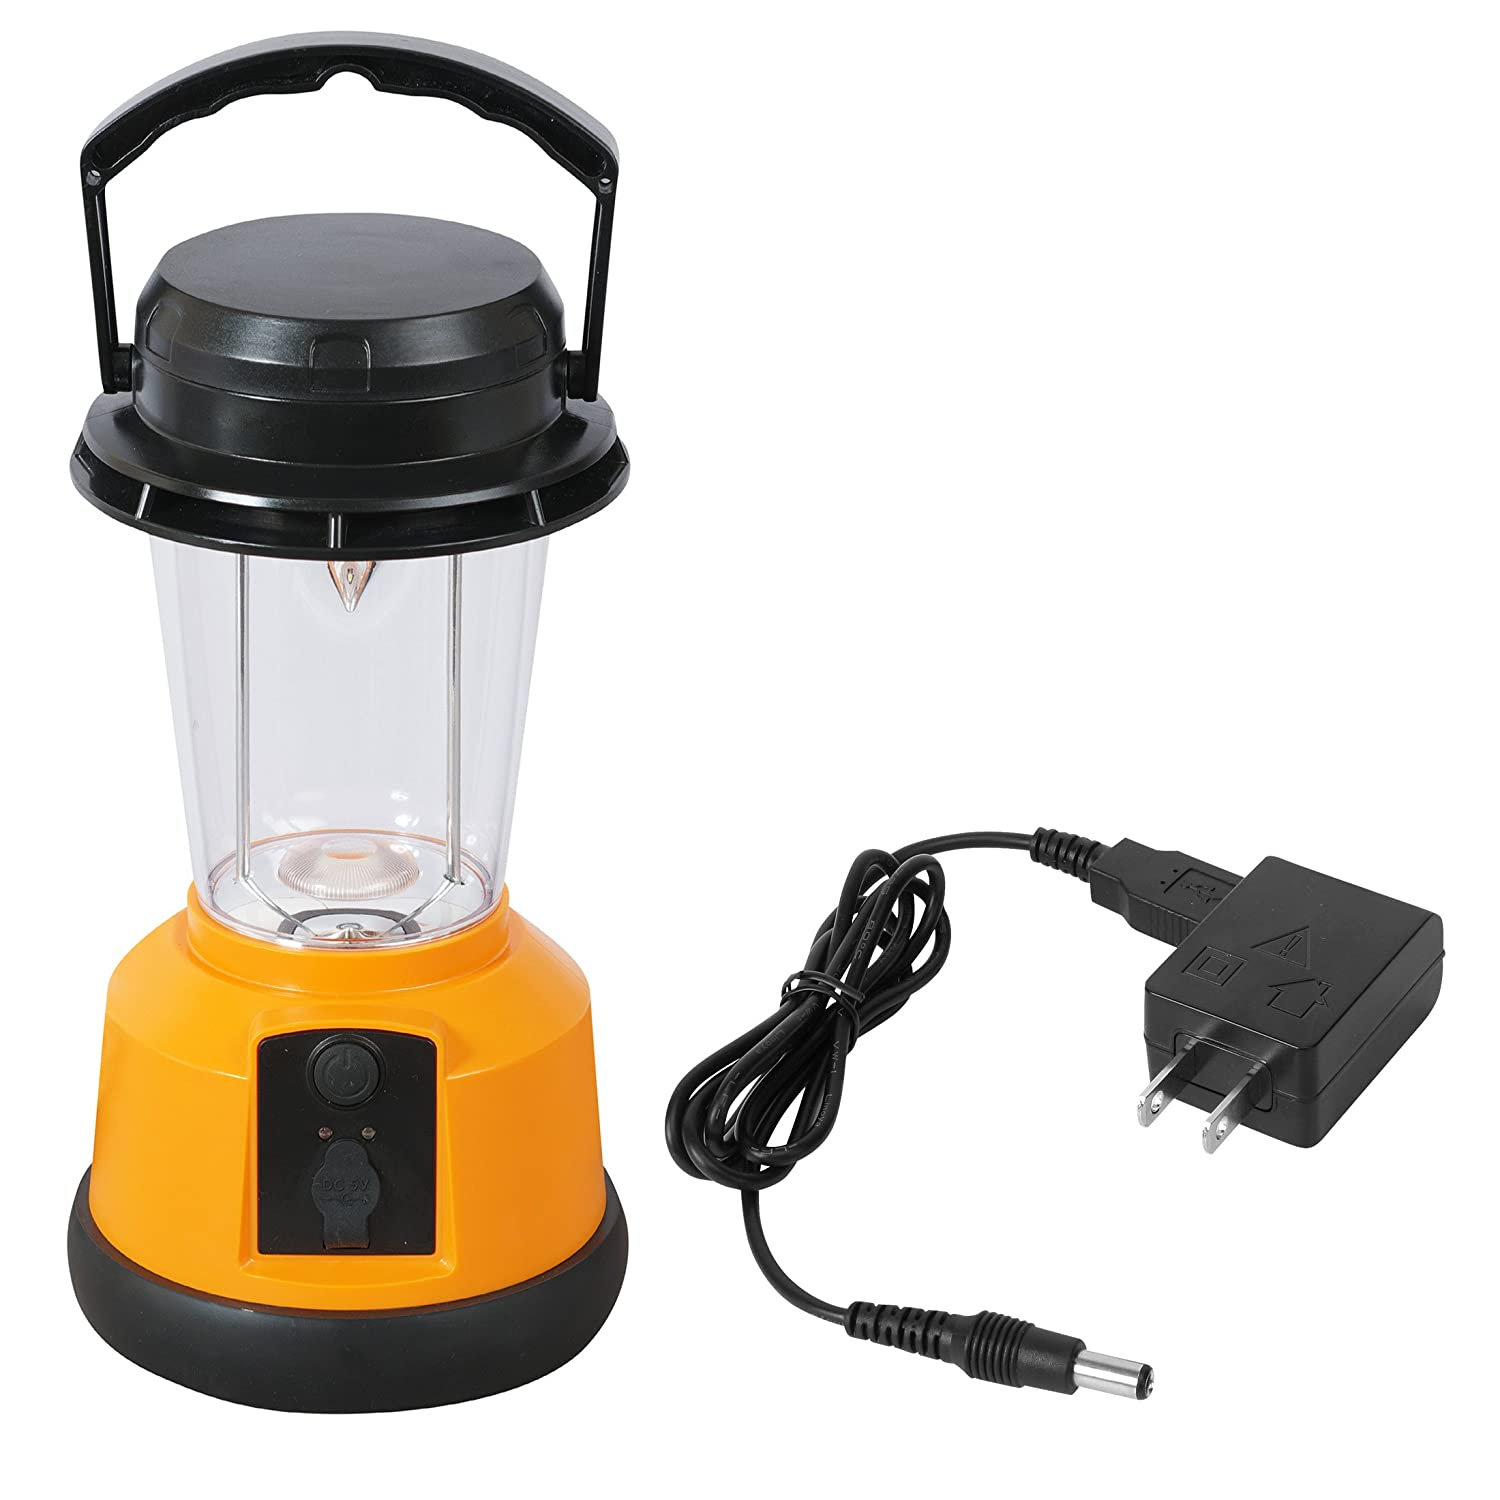 Everbrite E041008AE 3W LED Rechargeable CampLight